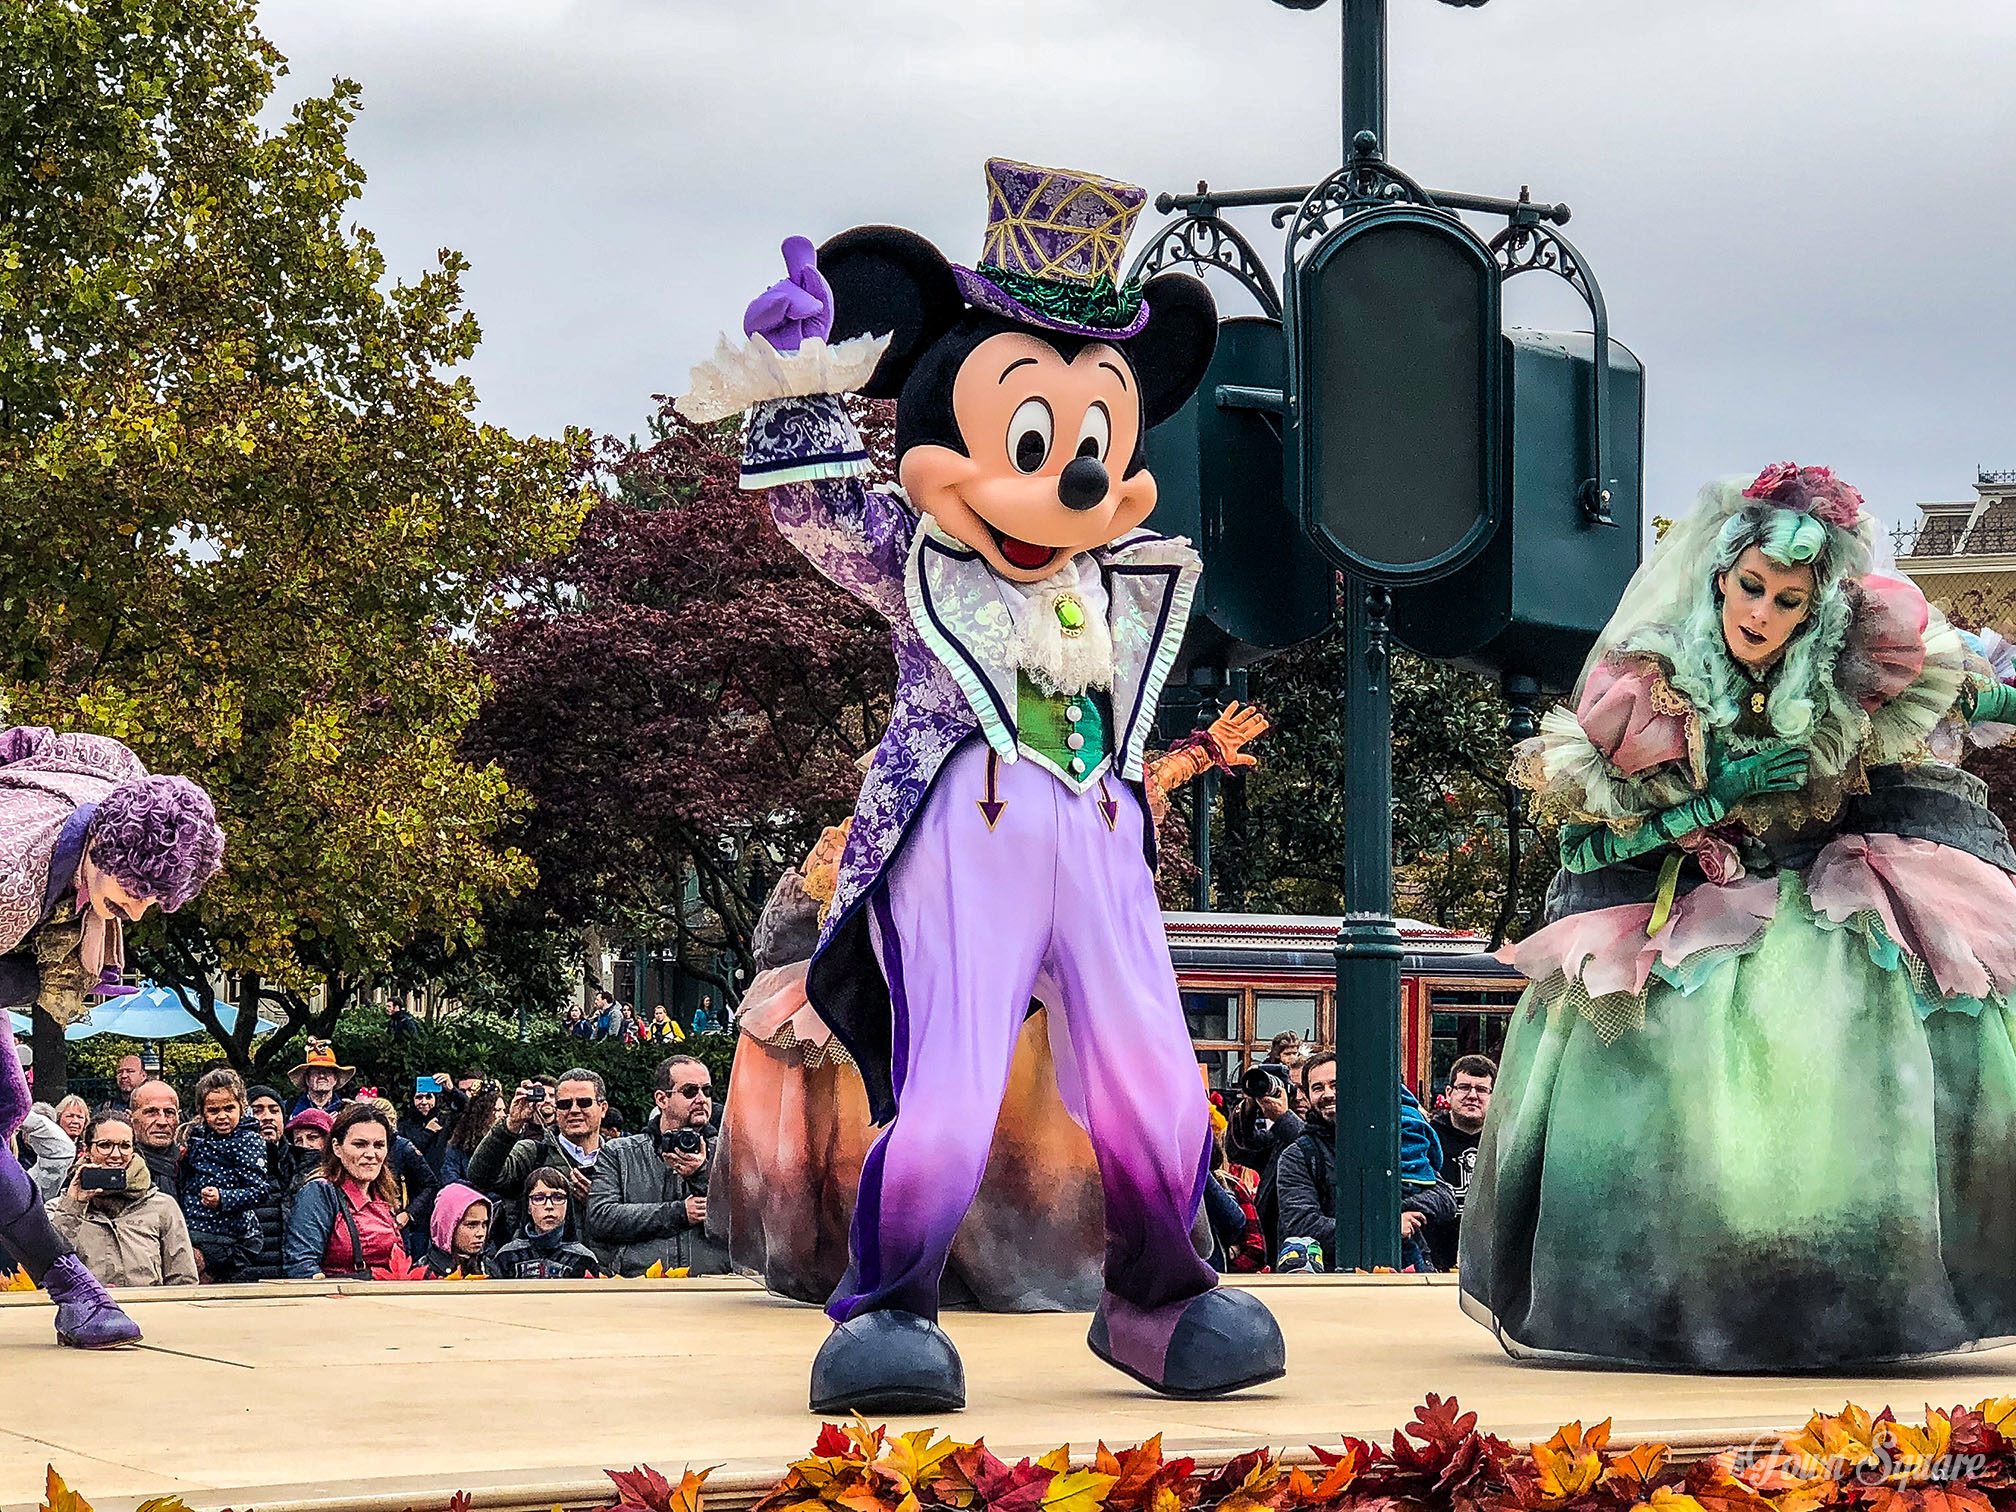 Mickey Mouse during the Halloween season at Disneyland Paris